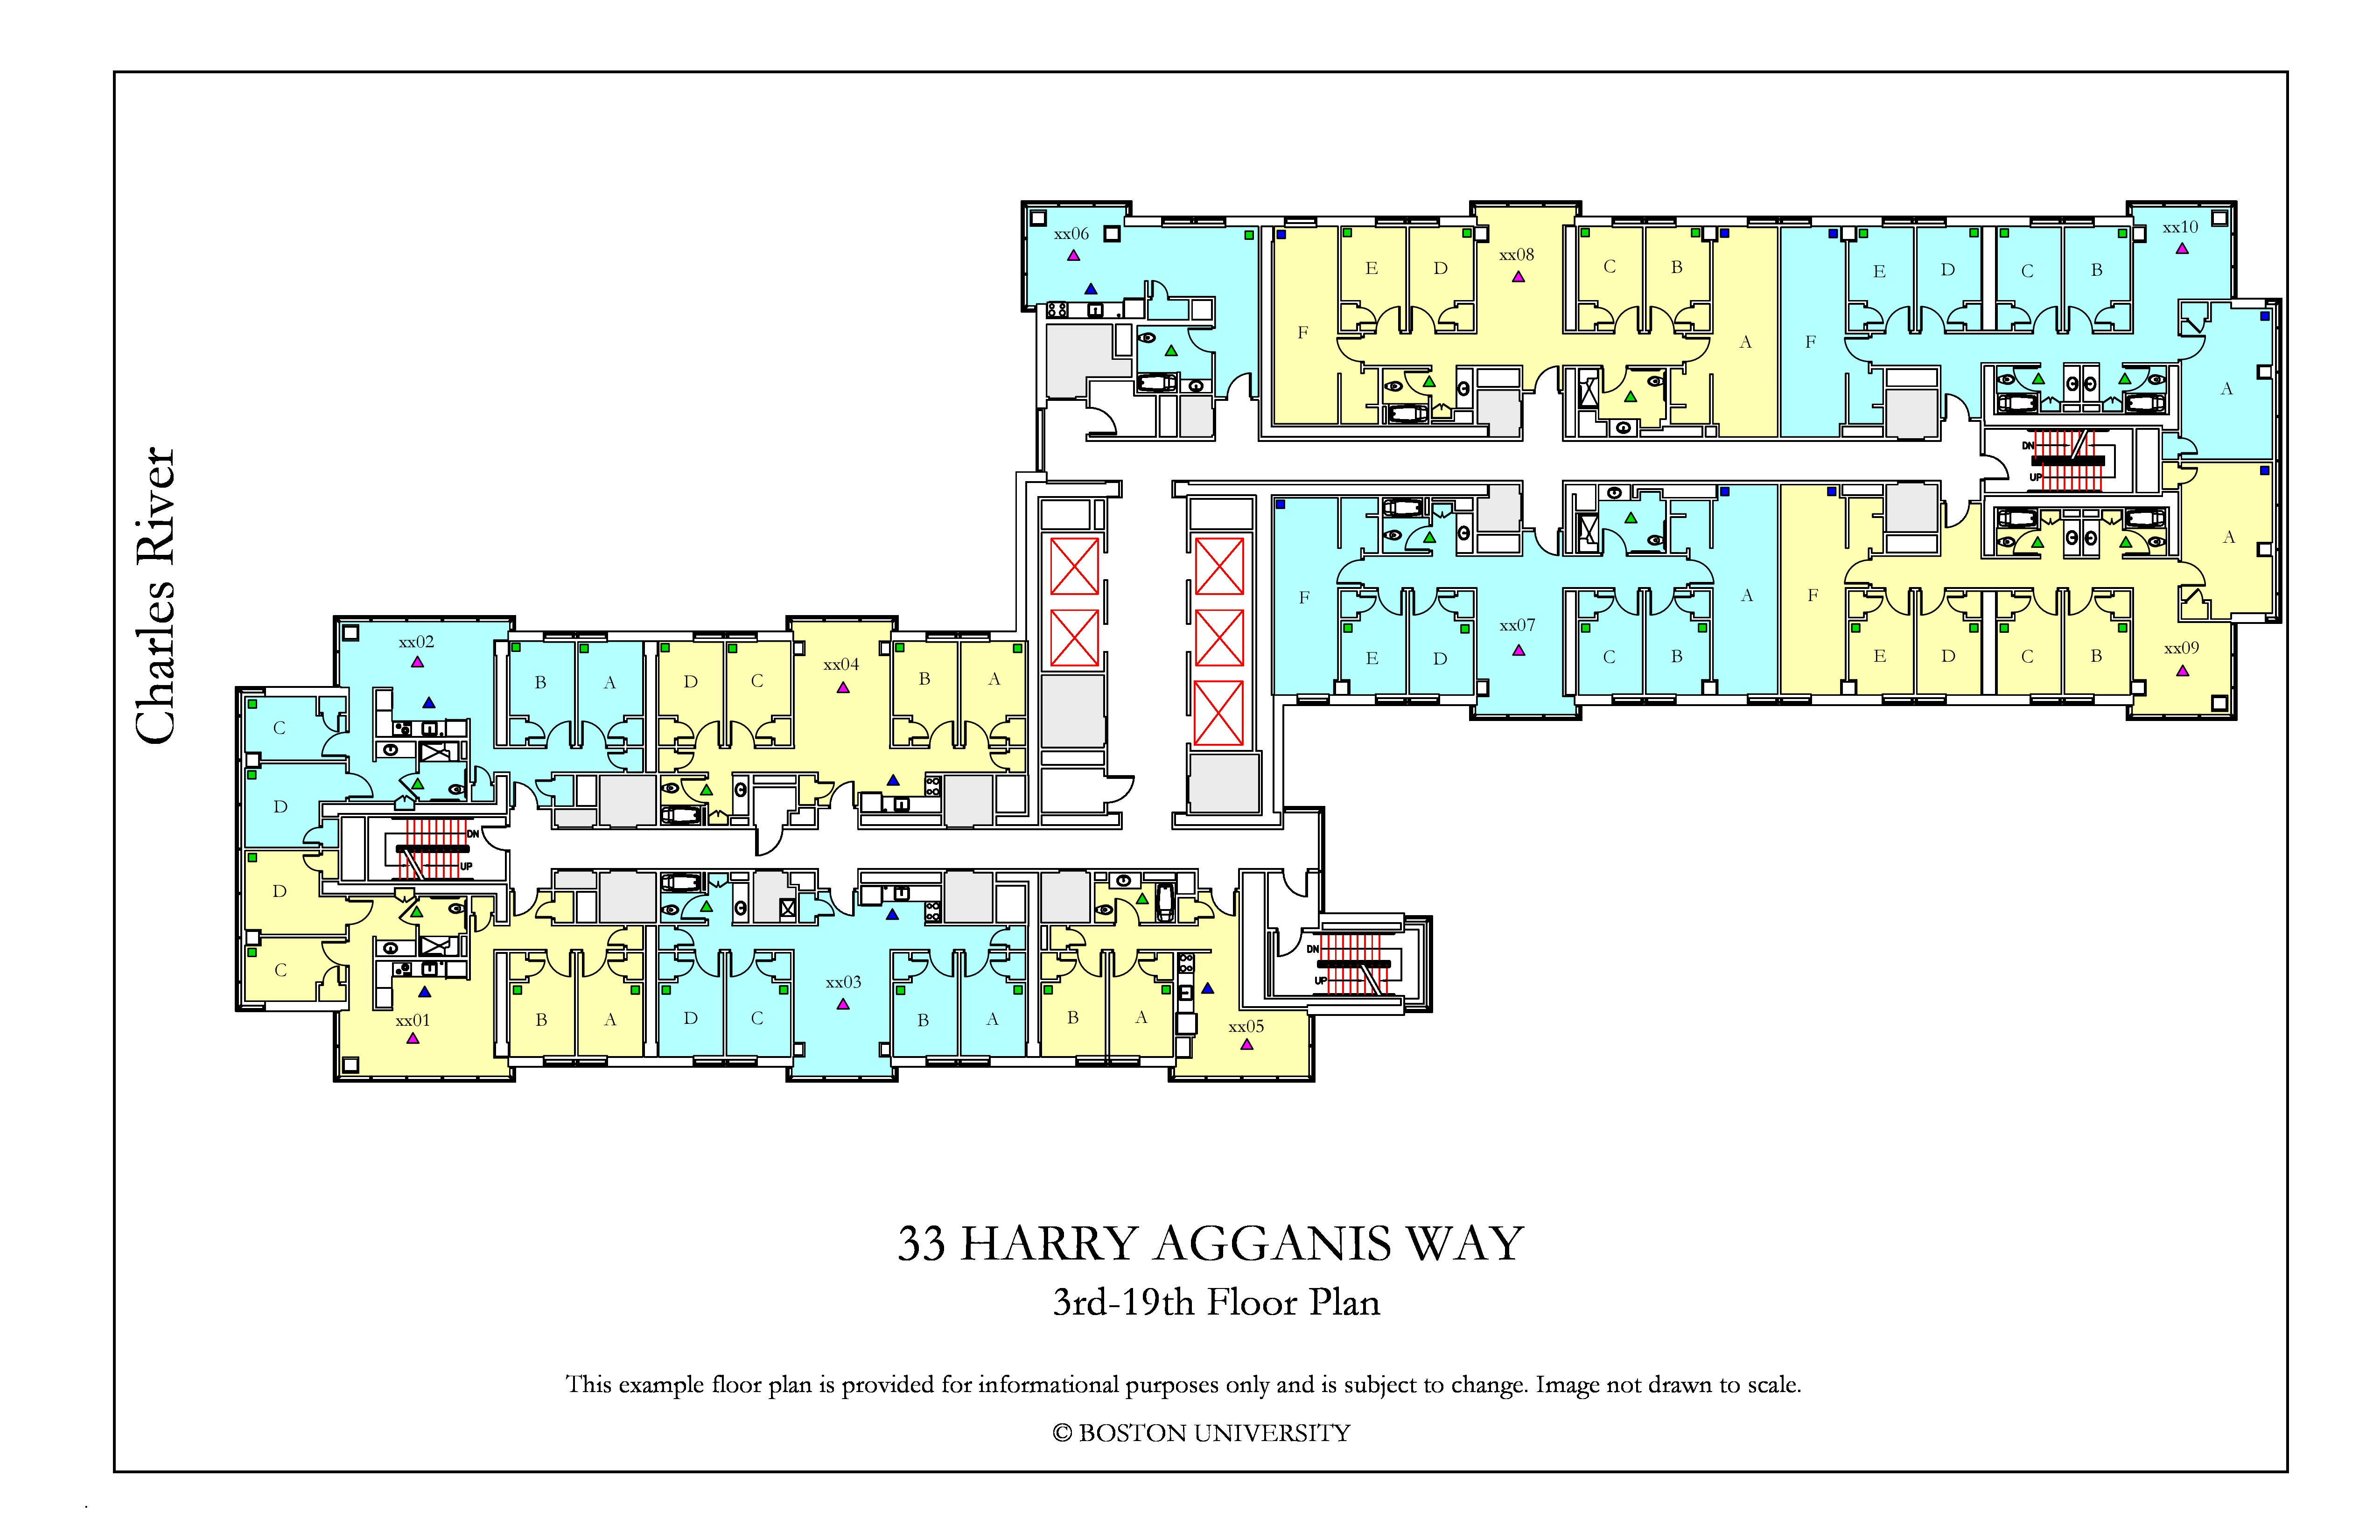 33 Harry Agganis Way Floor Plan 187 Housing Boston University